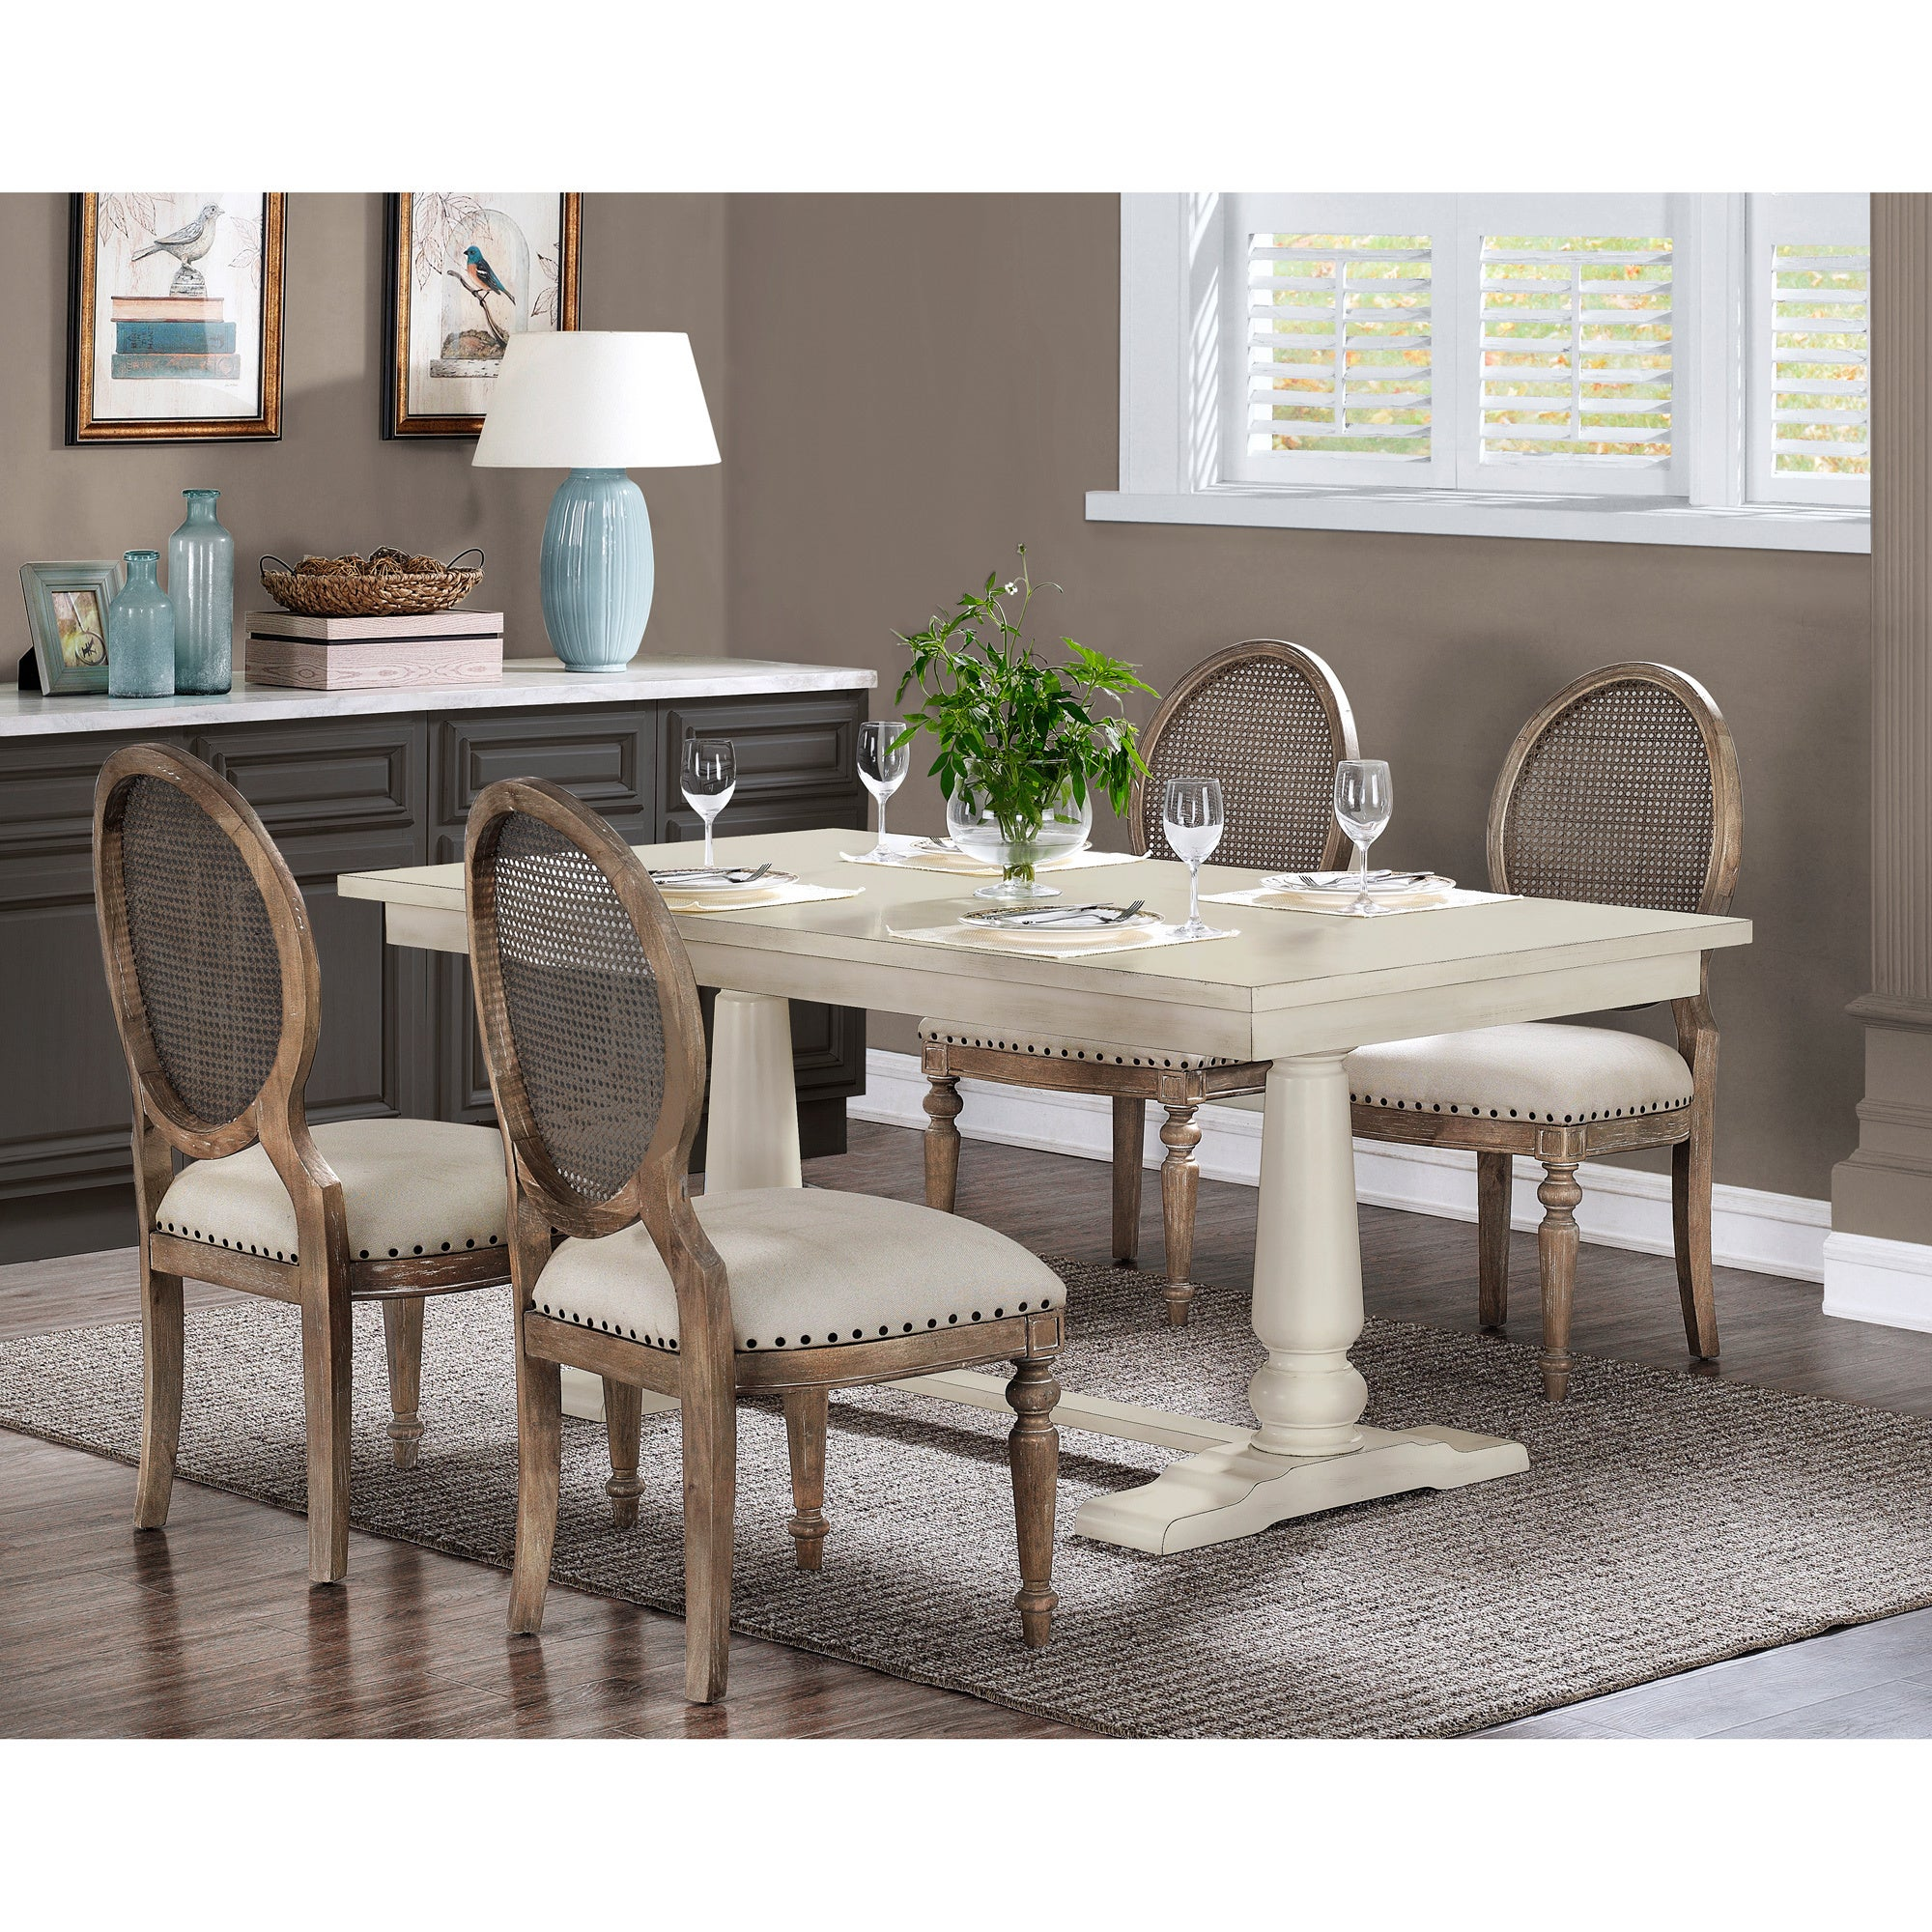 Stones U0026 Stripes Farmhouse White Pedestal Dining Table   Free Shipping  Today   Overstock   80008467